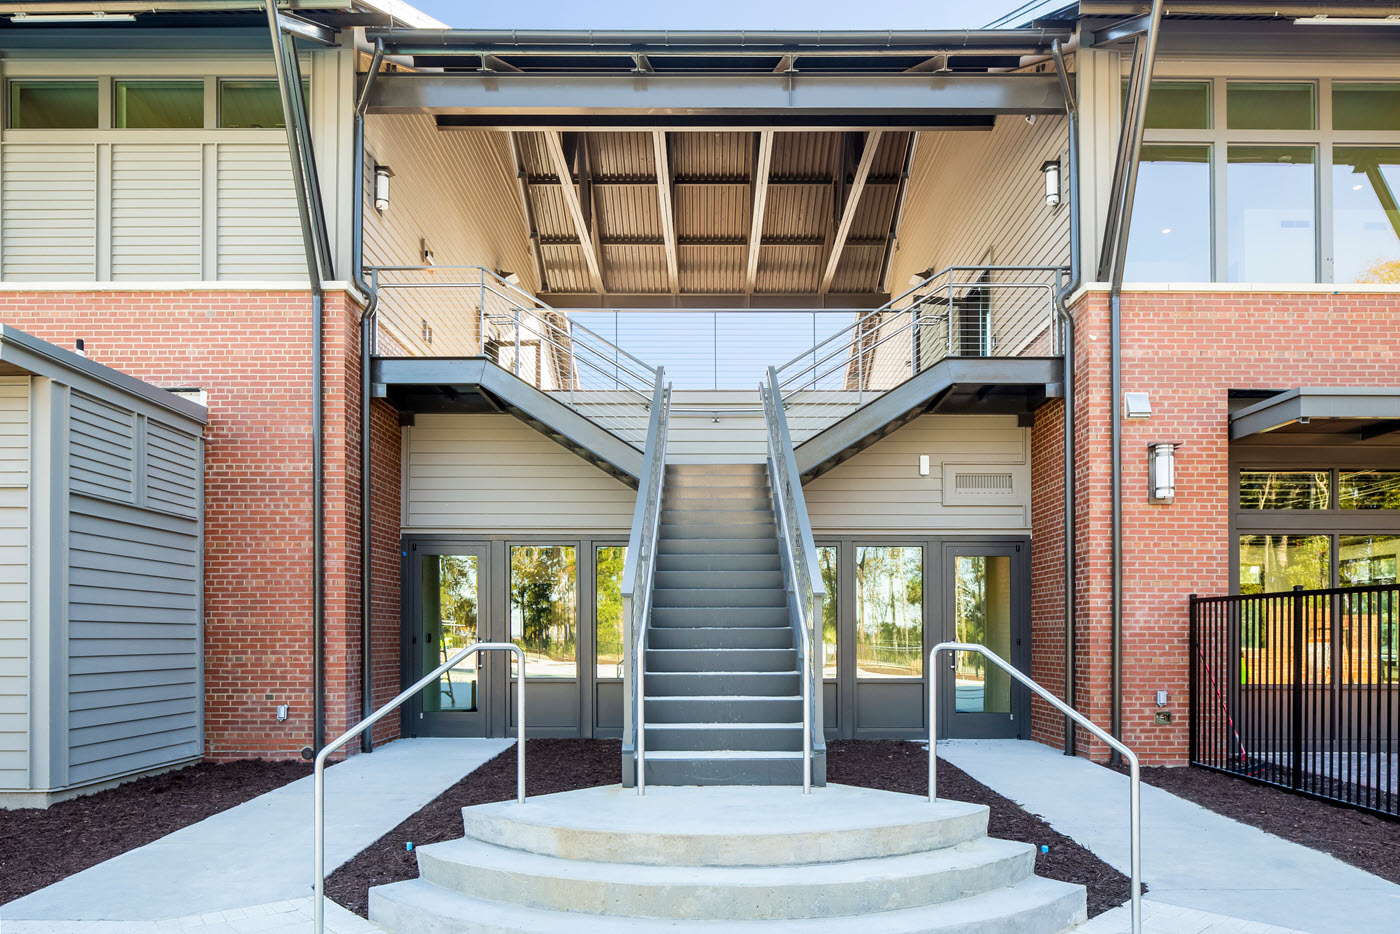 Grand Entry Split Staircase with Cable Railing System